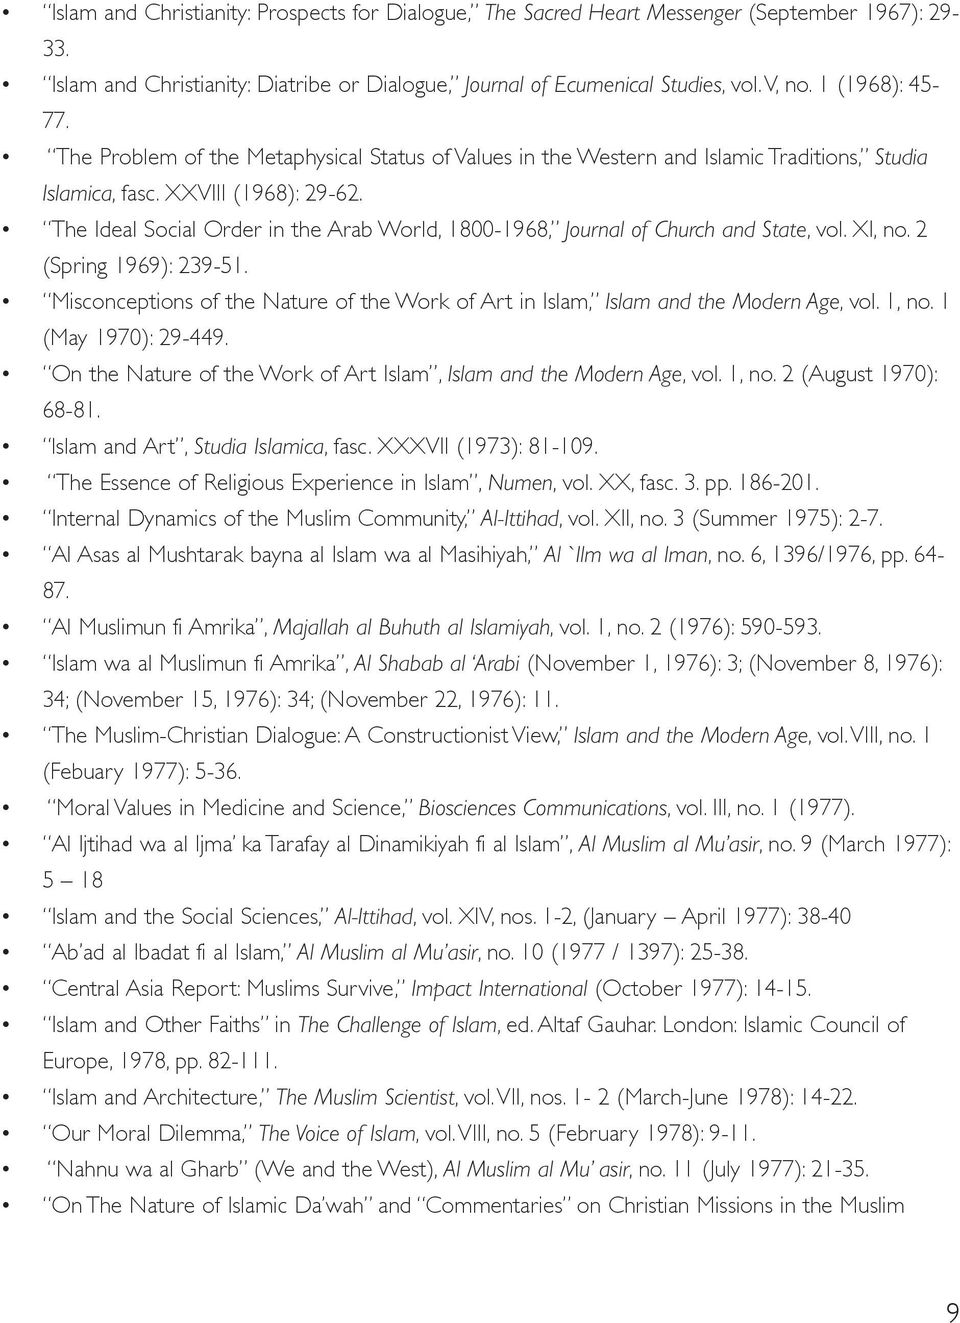 The Ideal Social order in the Arab World, 1800-1968, Journal of Church and State, vol. xi, no. 2 (Spring 1969): 239-51.